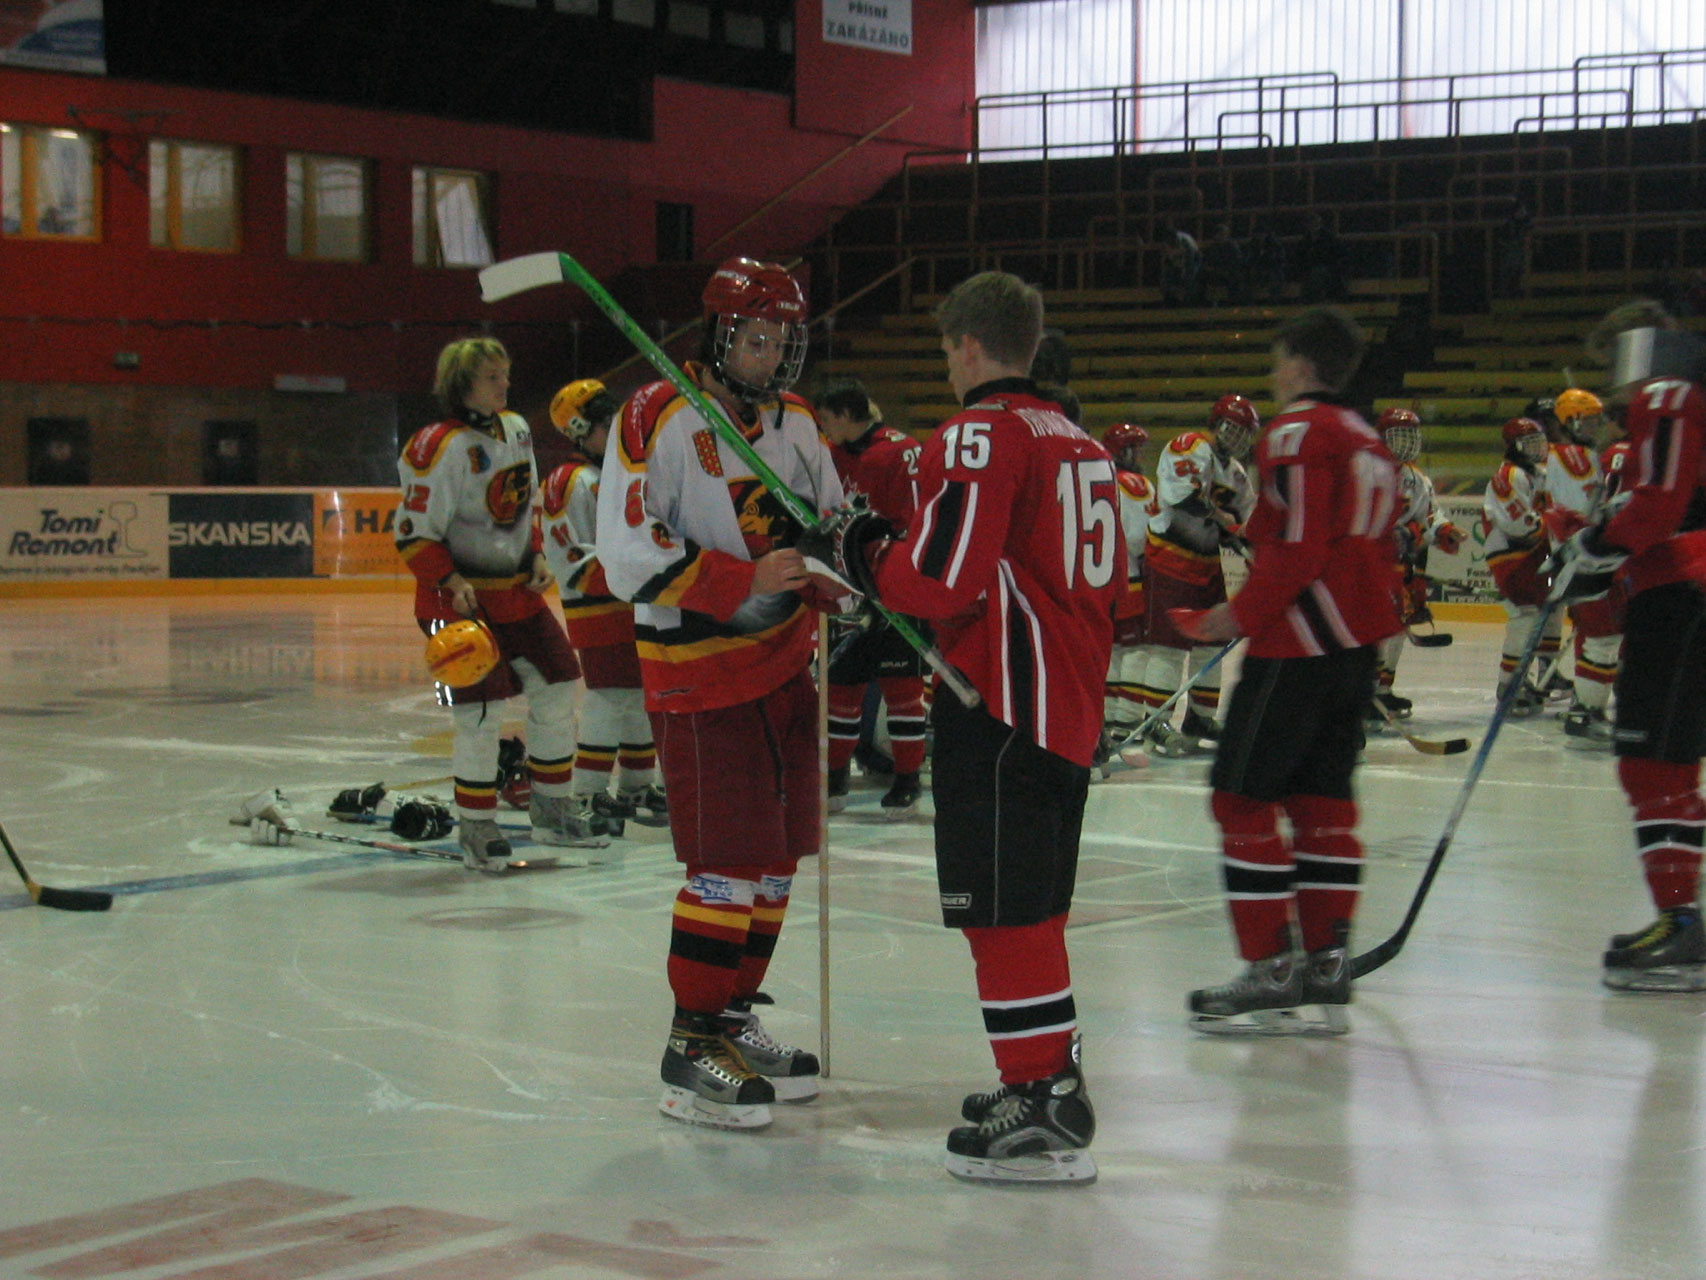 Exhilarating Hockey Action Moore Sports Tours